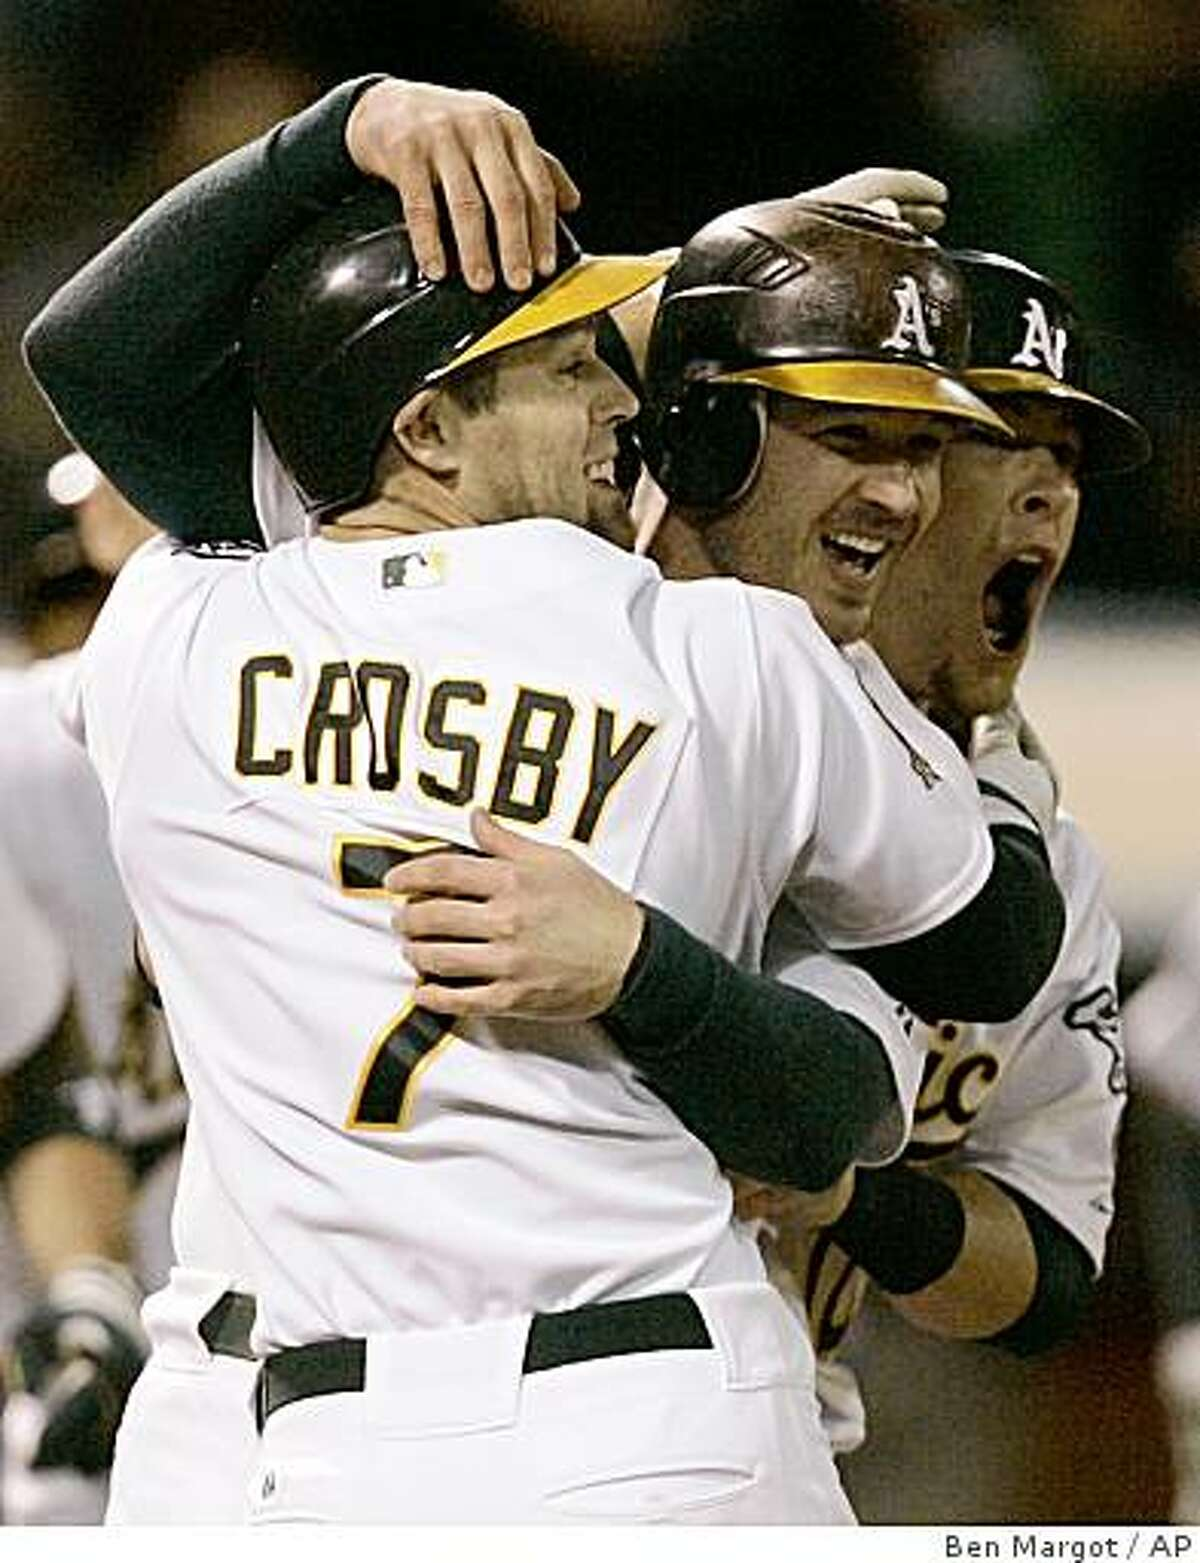 Oakland Athletics' Jack Hannahan, center, celebrates with Bobby Crosby (7) at the end of a baseball game against the Los Angeles Angels, Wednesday, Sept. 17, 2008, in Oakland, Calif. (AP Photo/Ben Margot)